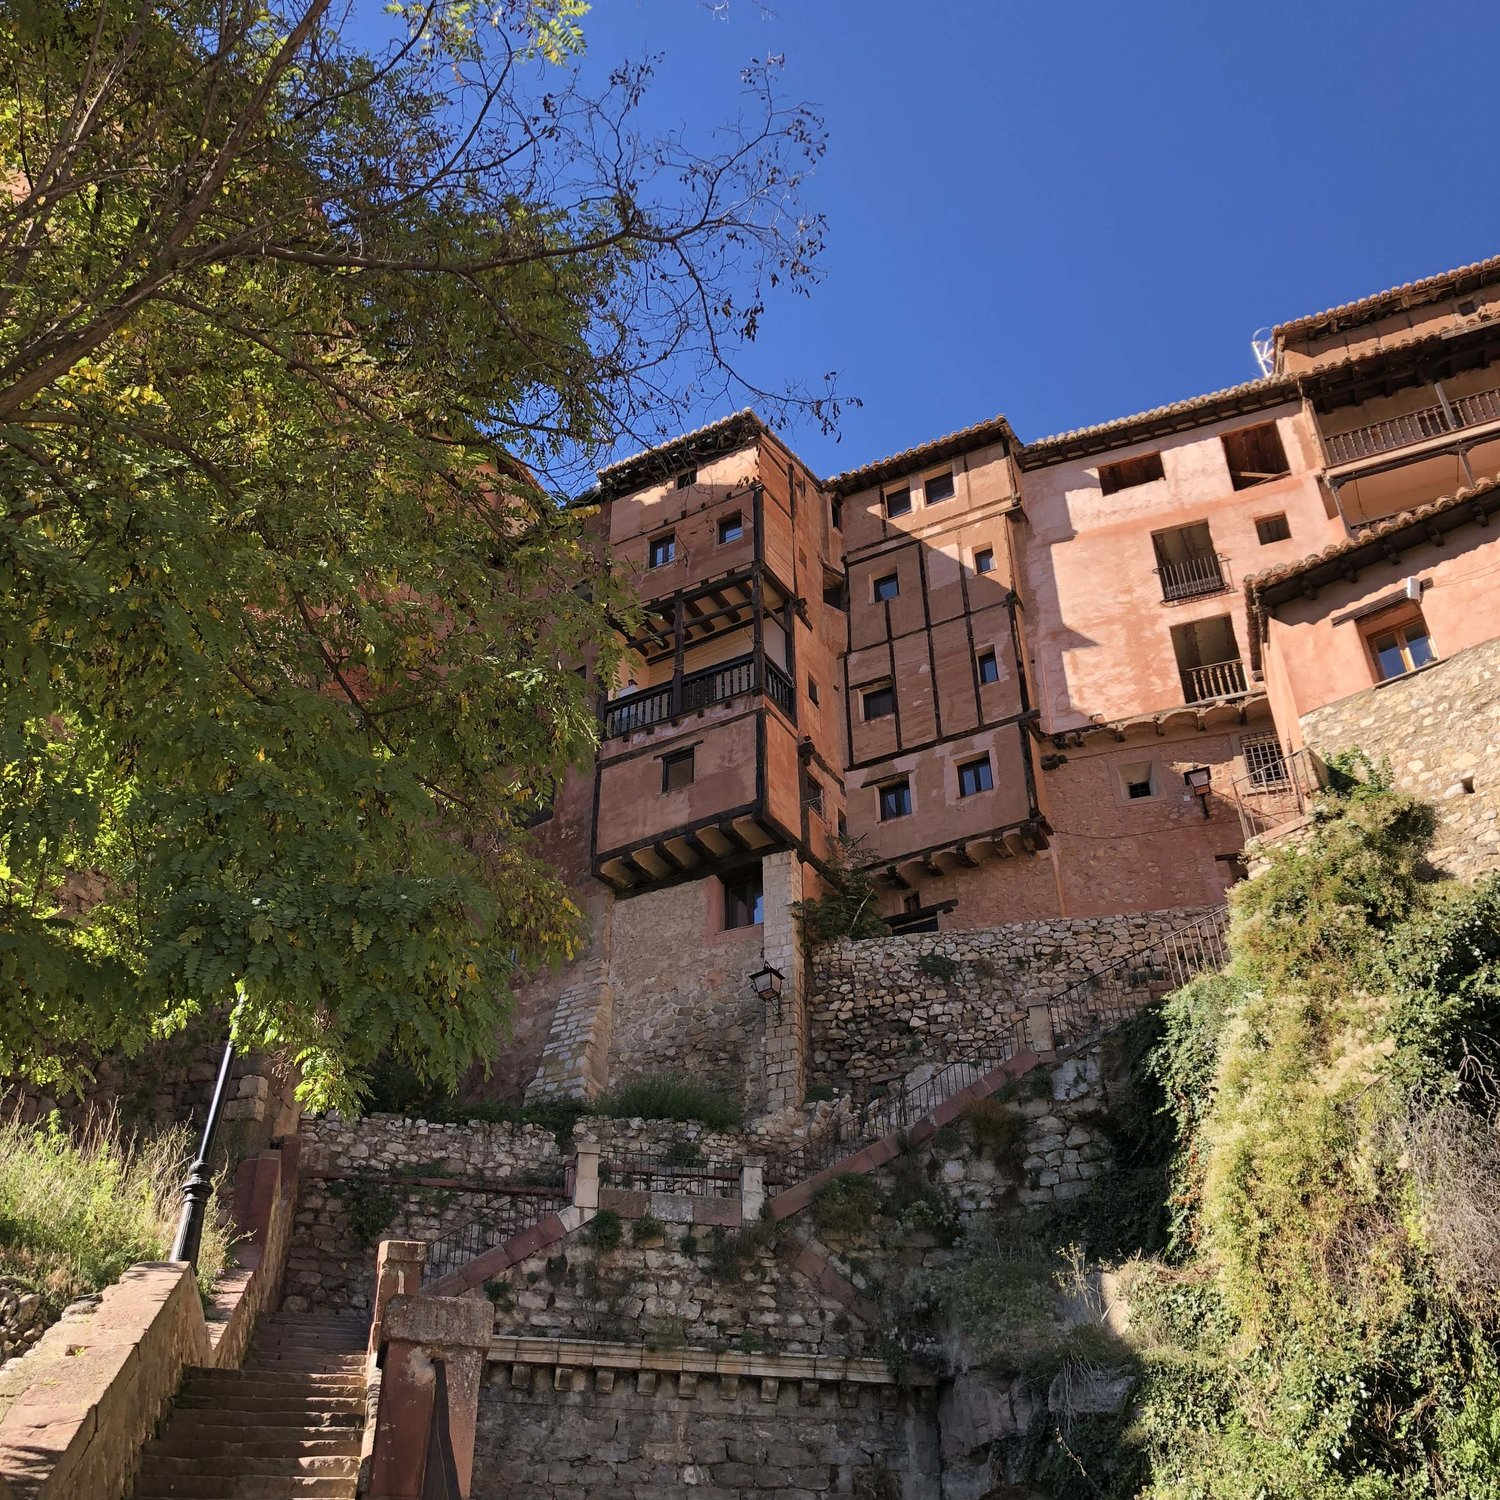 Hanging houses of Albarracín.